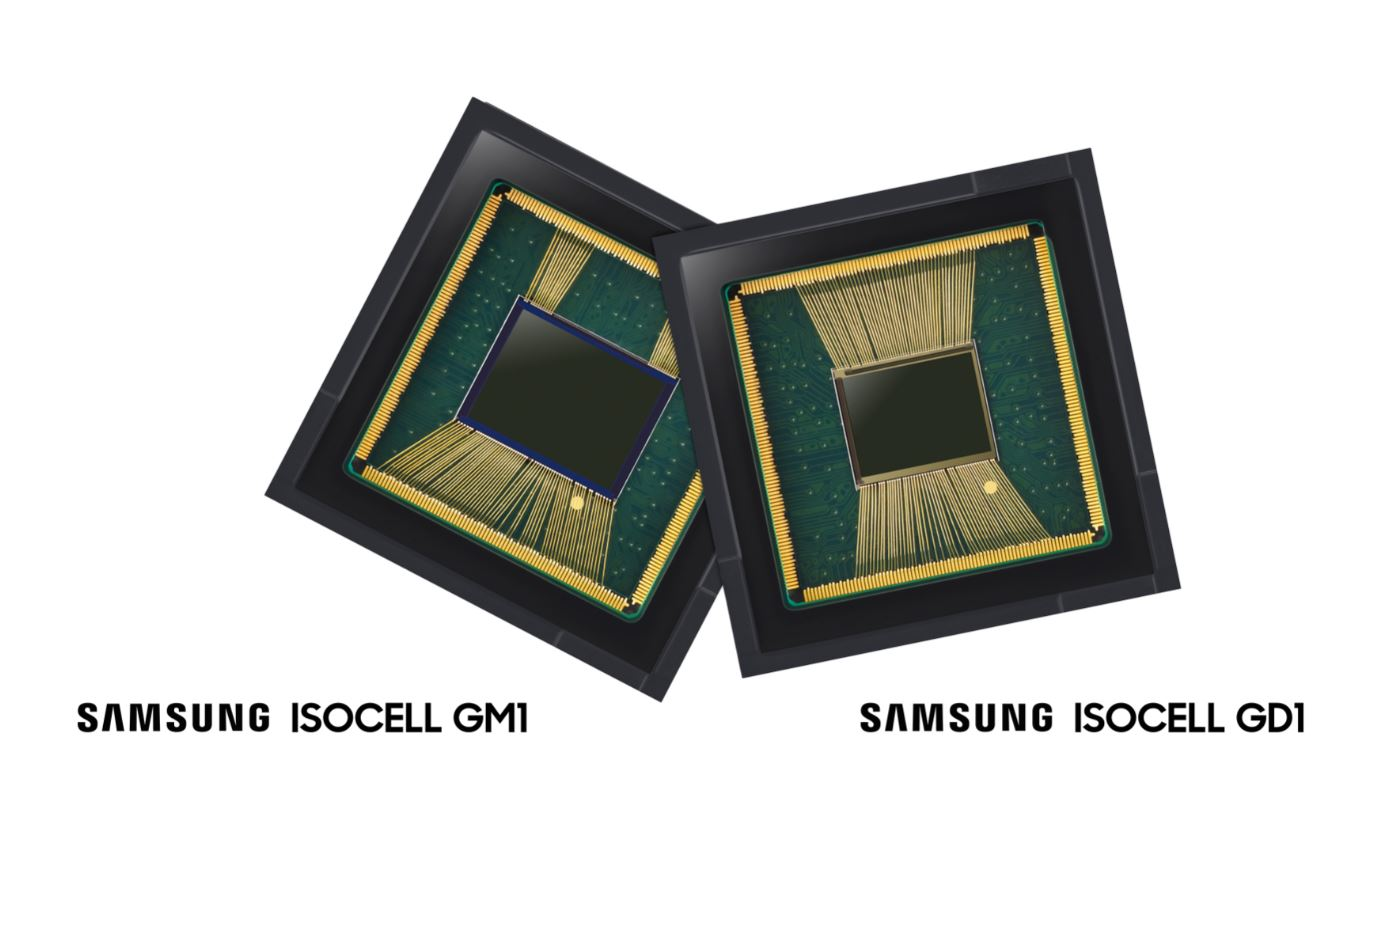 Samsung Isocell GM1 GD1